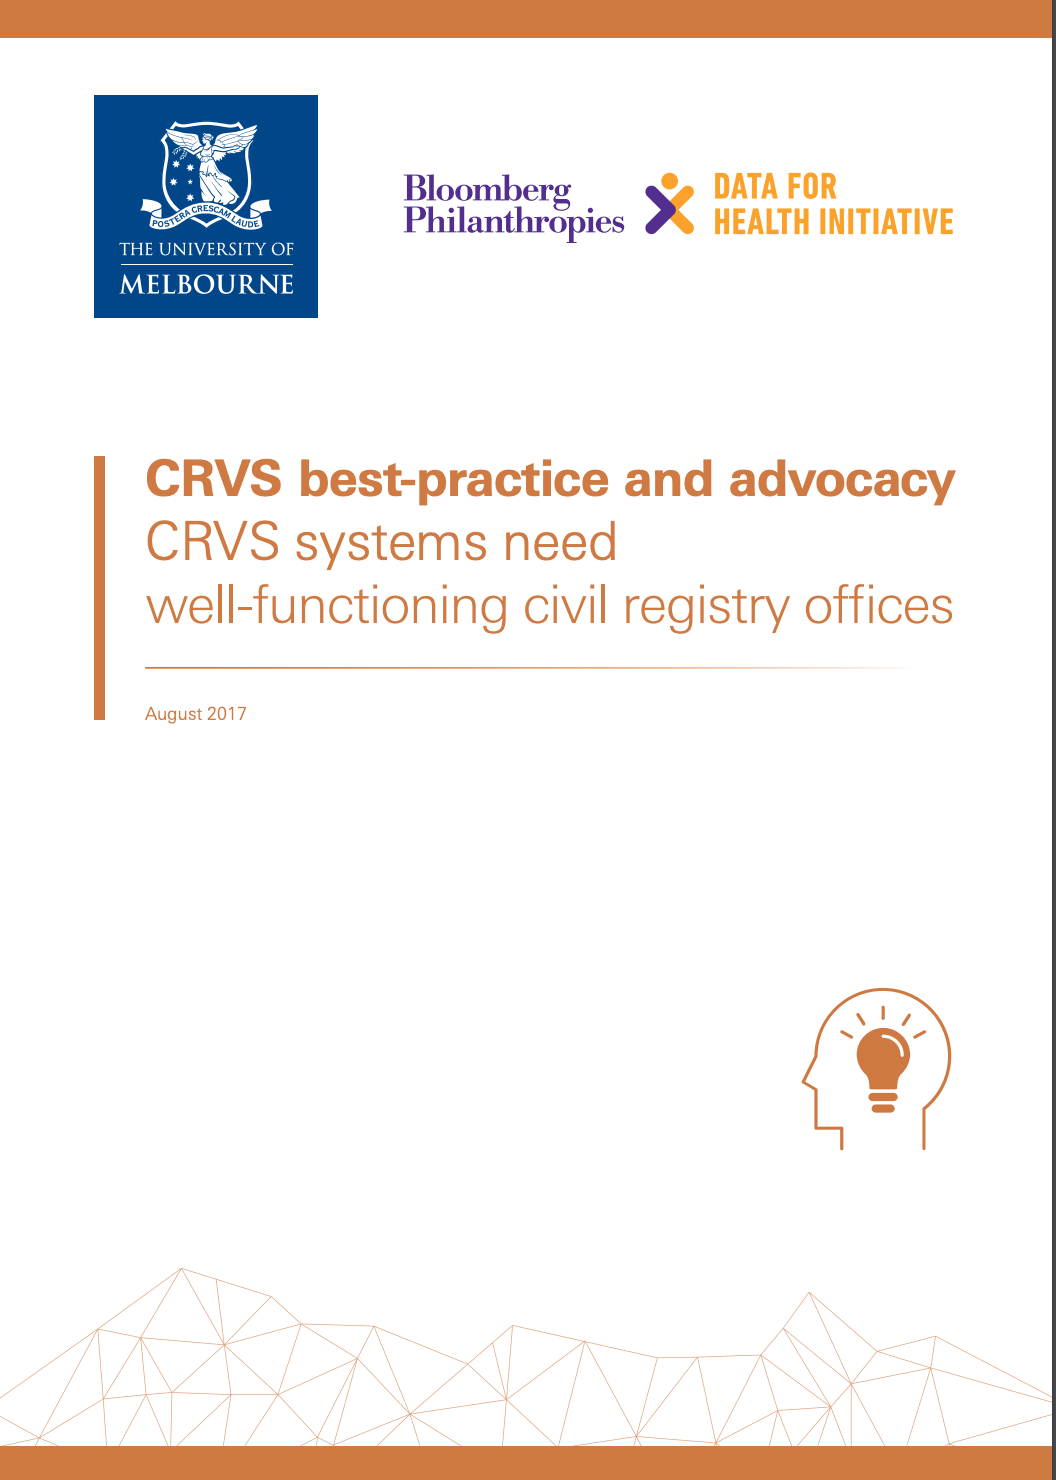 CRVS best-practice and advocacy